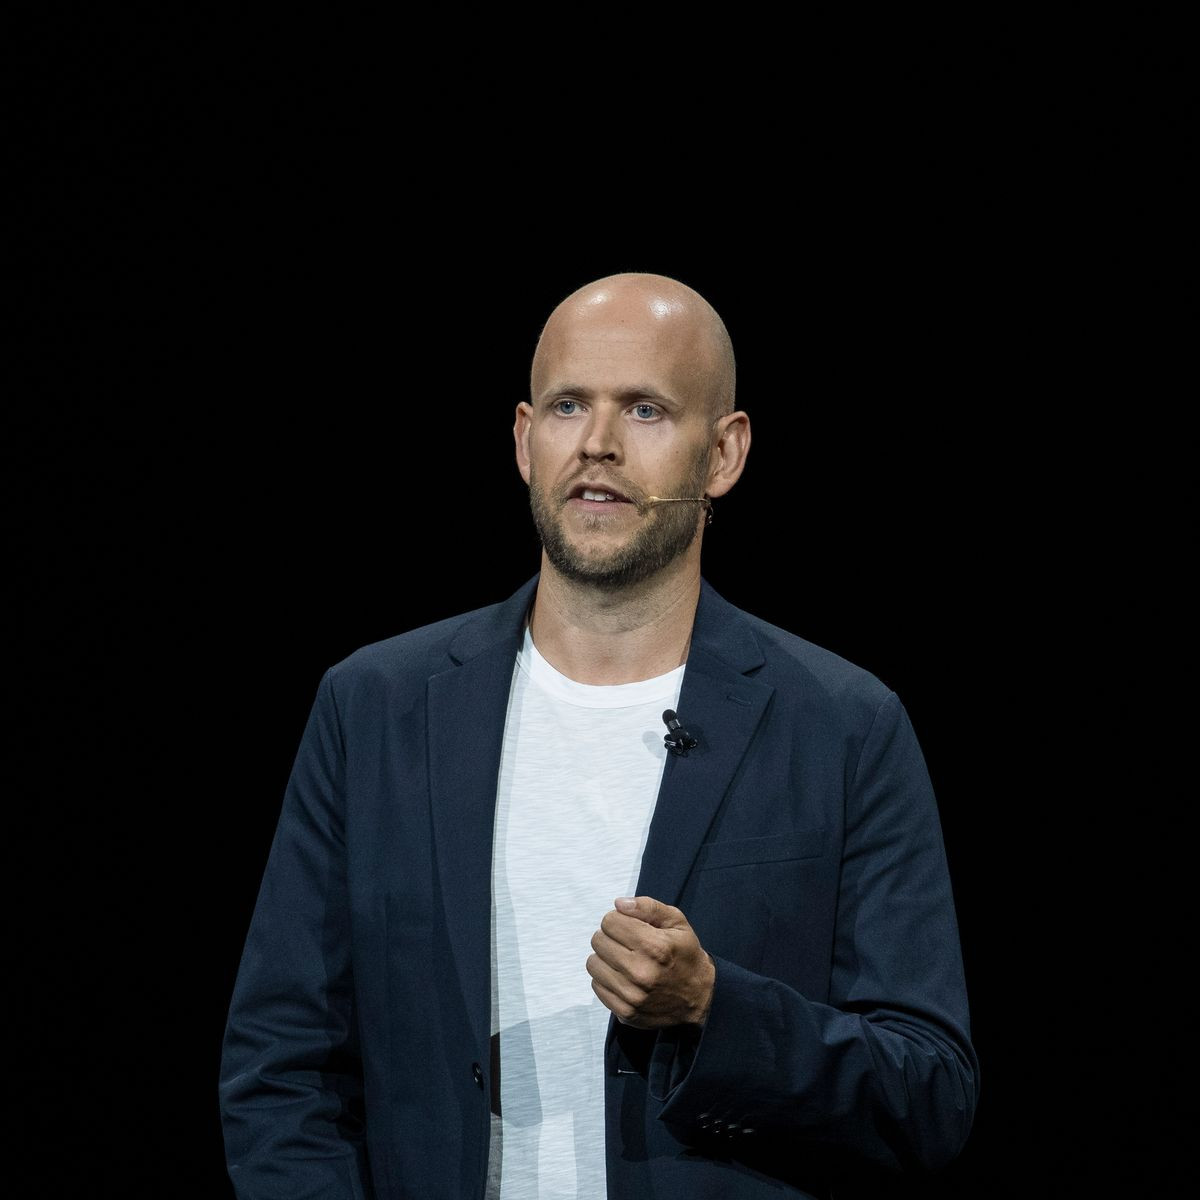 Arsenal legends Thierry Henry, Dennis Bergkamp and Patrick Vieira join Spotify founder worth ?3.4bn in take over bid of the football club